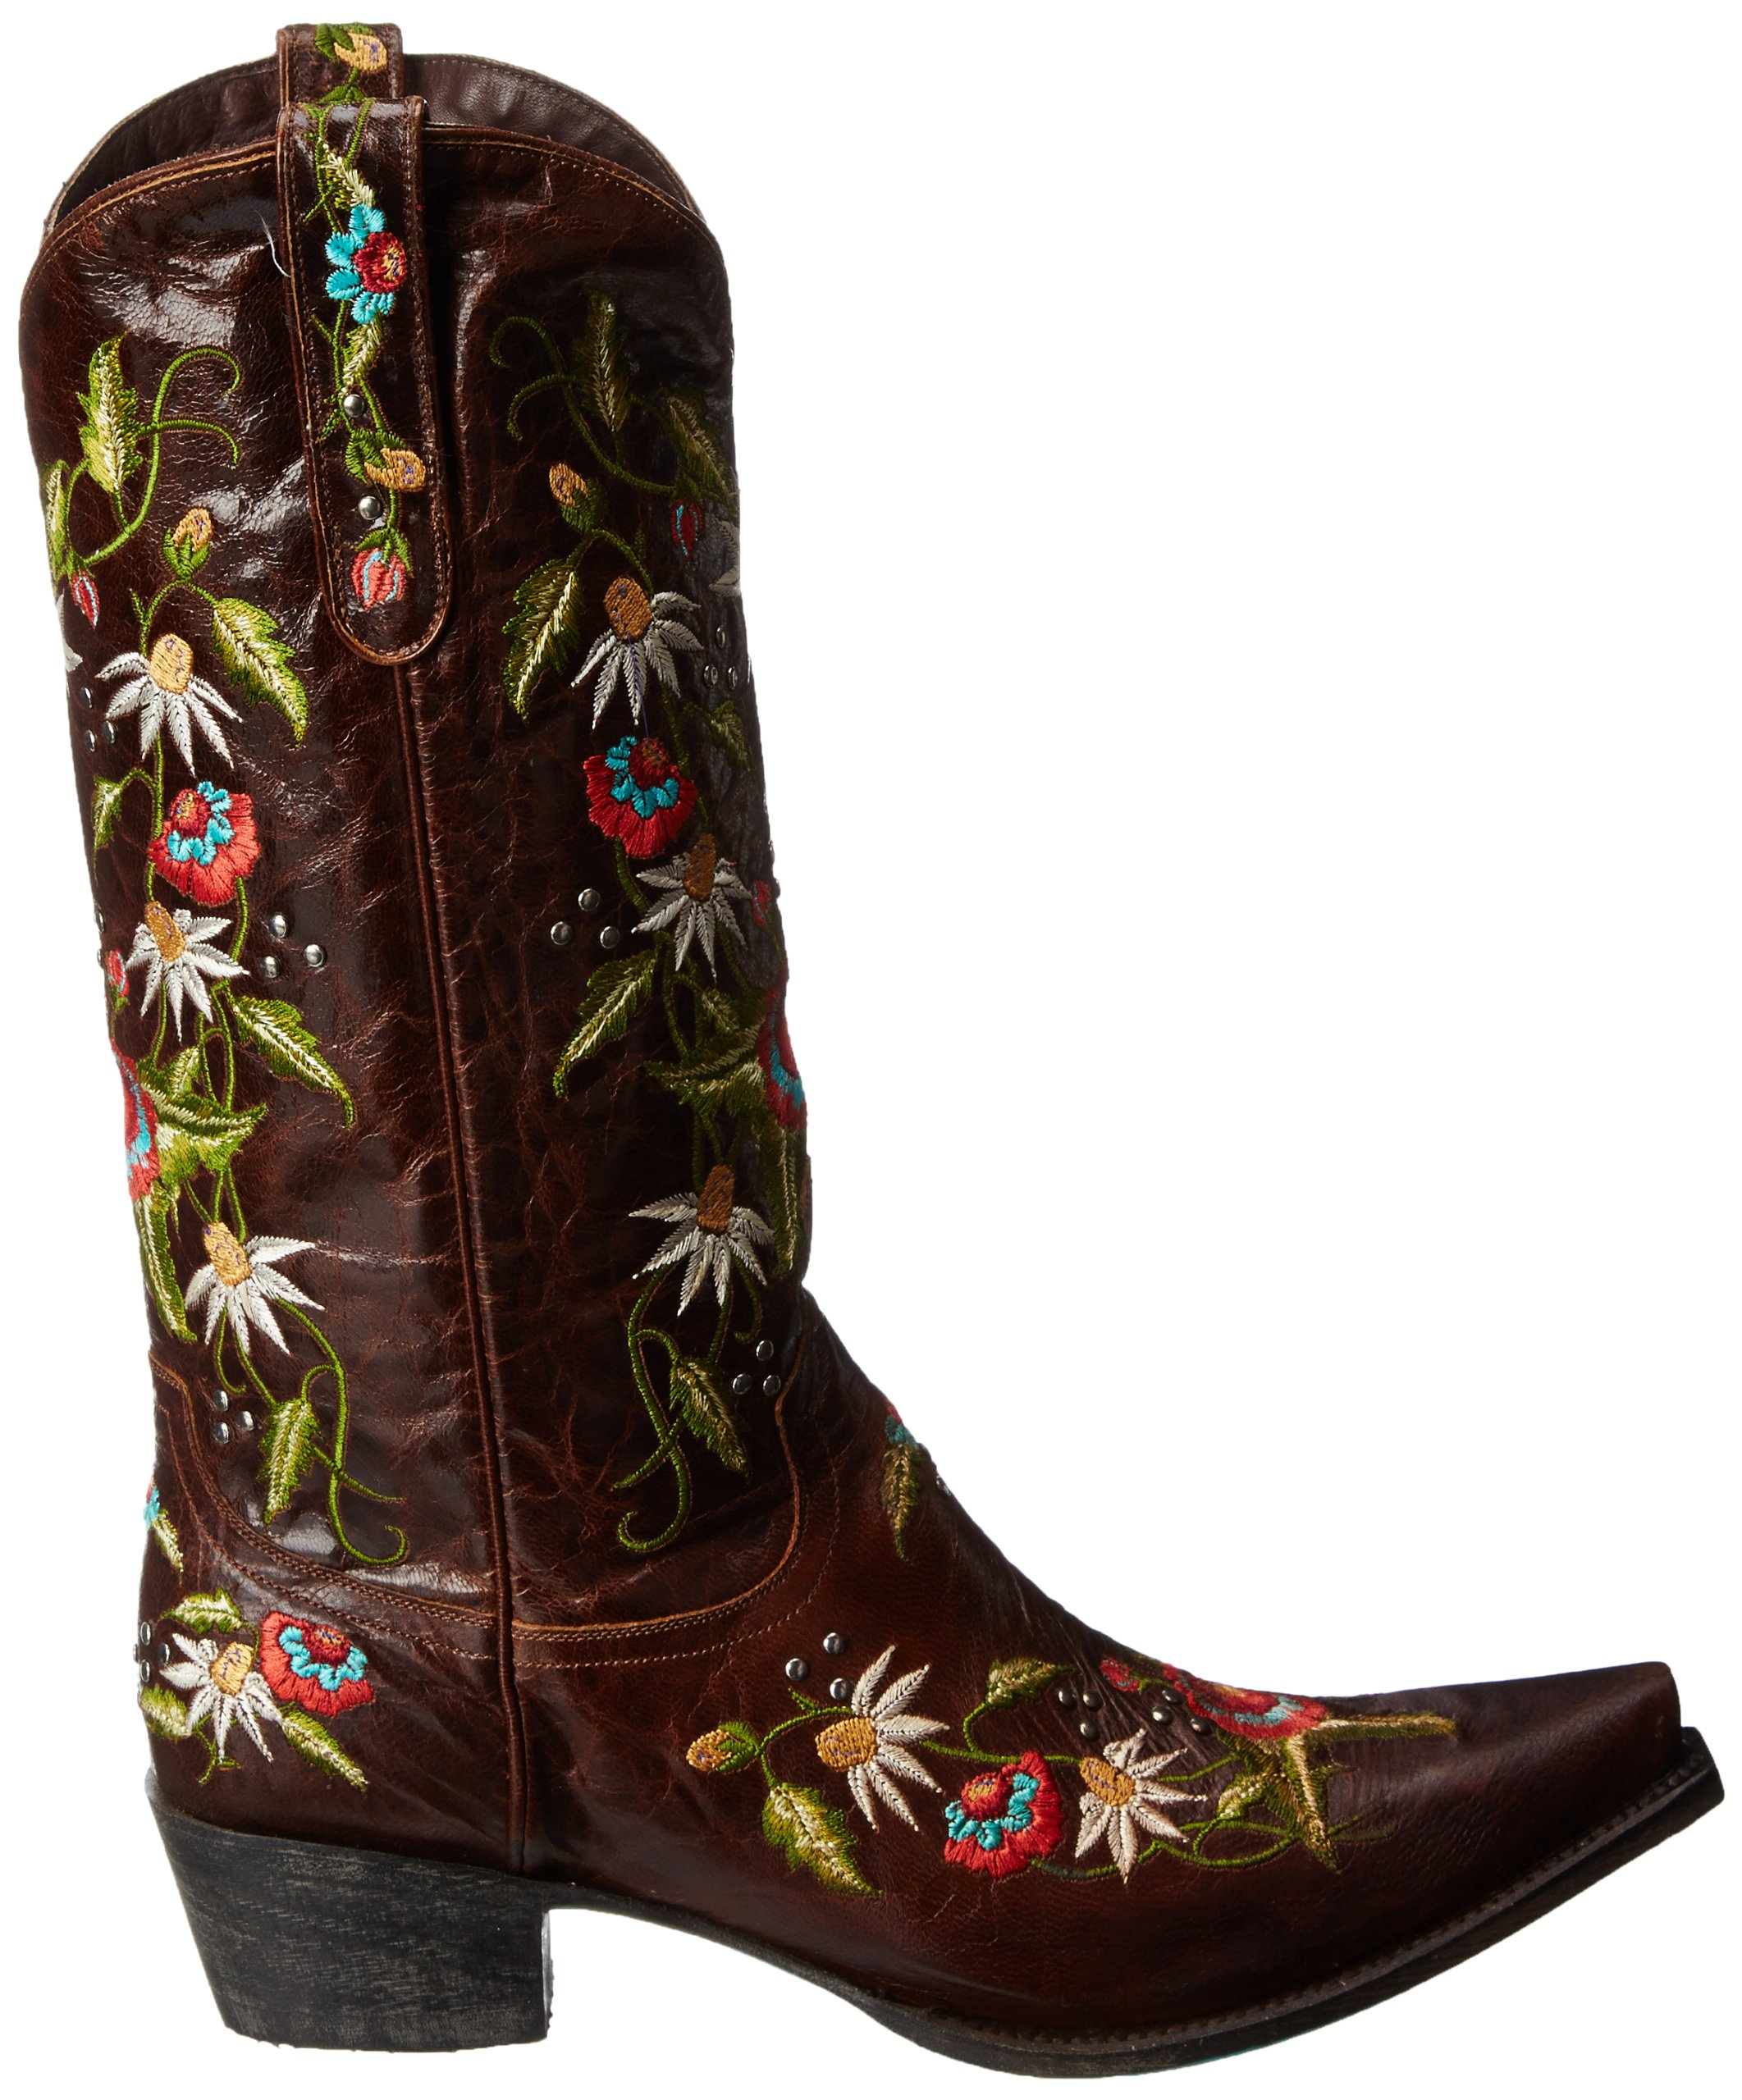 Lane Boots Women's Summer Bounty Studs Western Boot,Brown,10.5 B US by Lane Boots (Image #6)